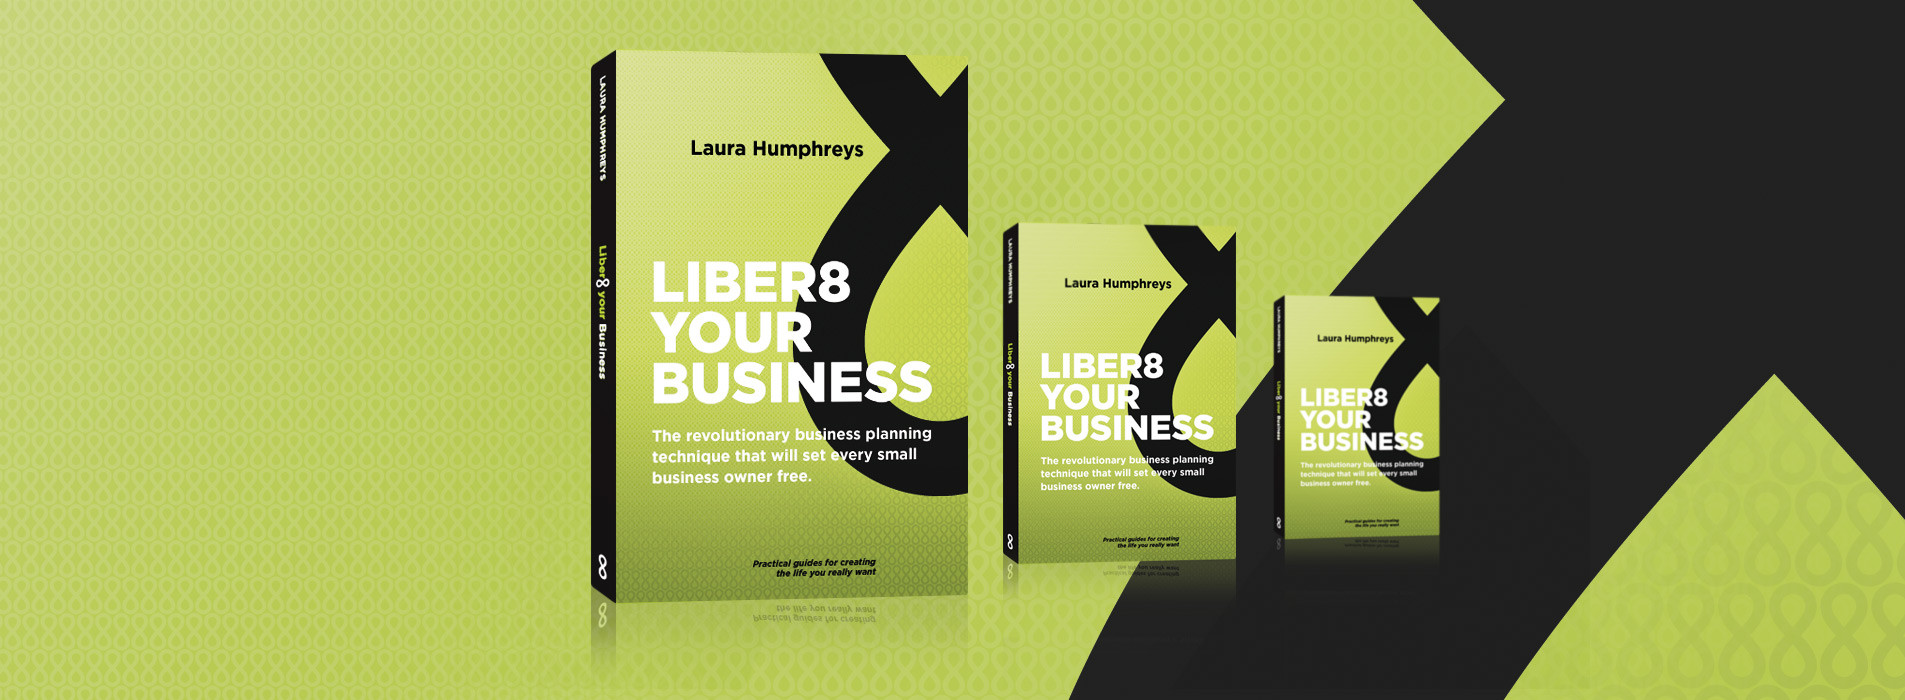 project-HOME-liber8-your-business1